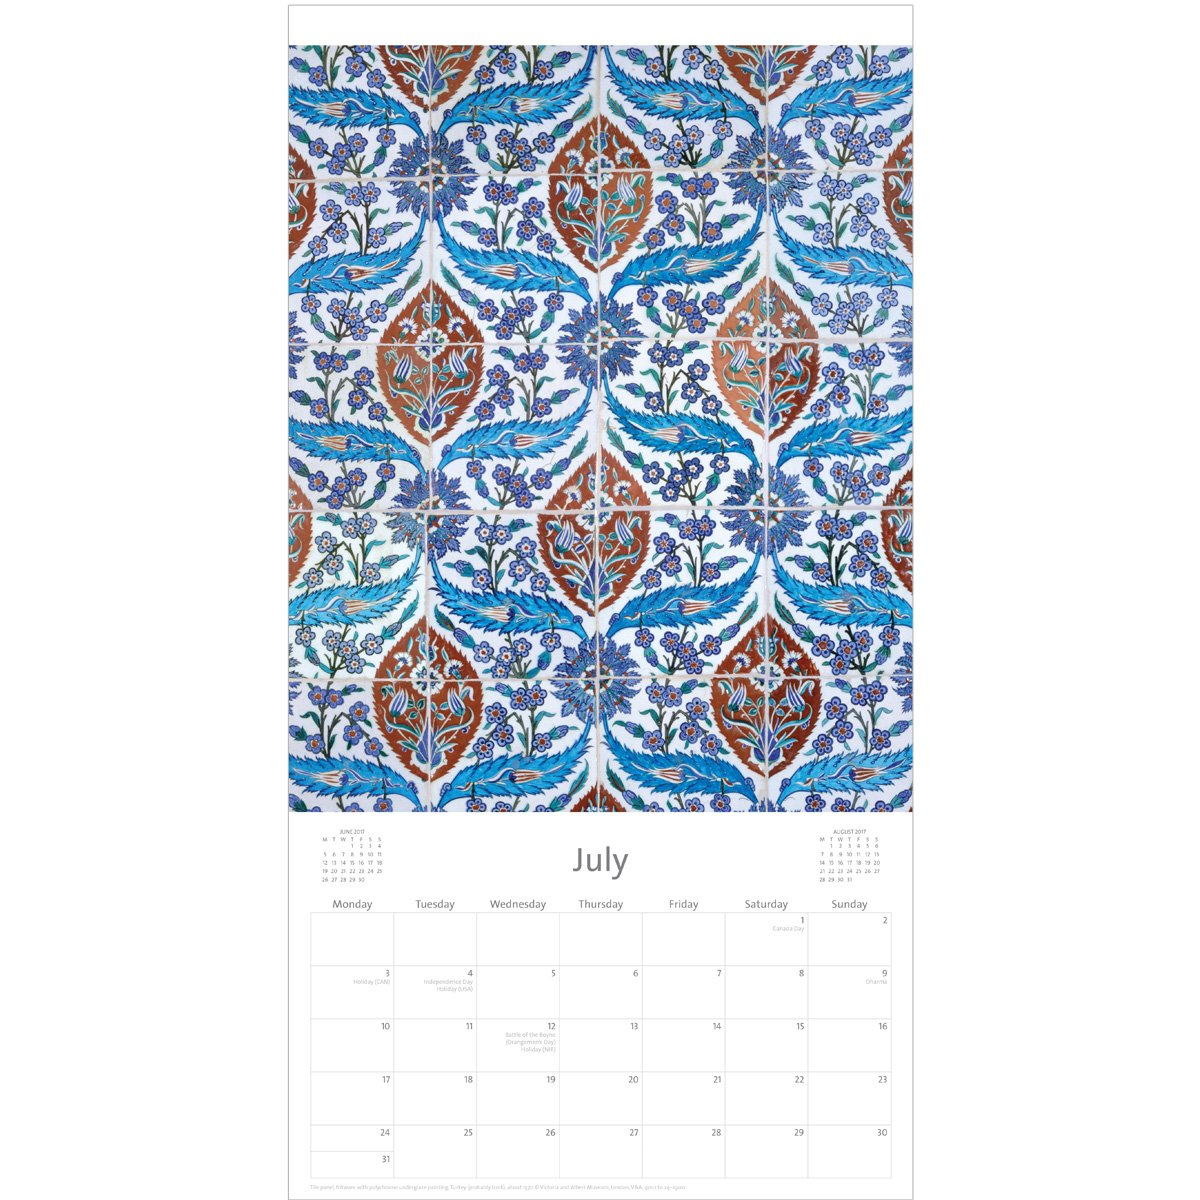 V&a Middle Eastern Patterns Calendar 2017 V&a Calendar 2019